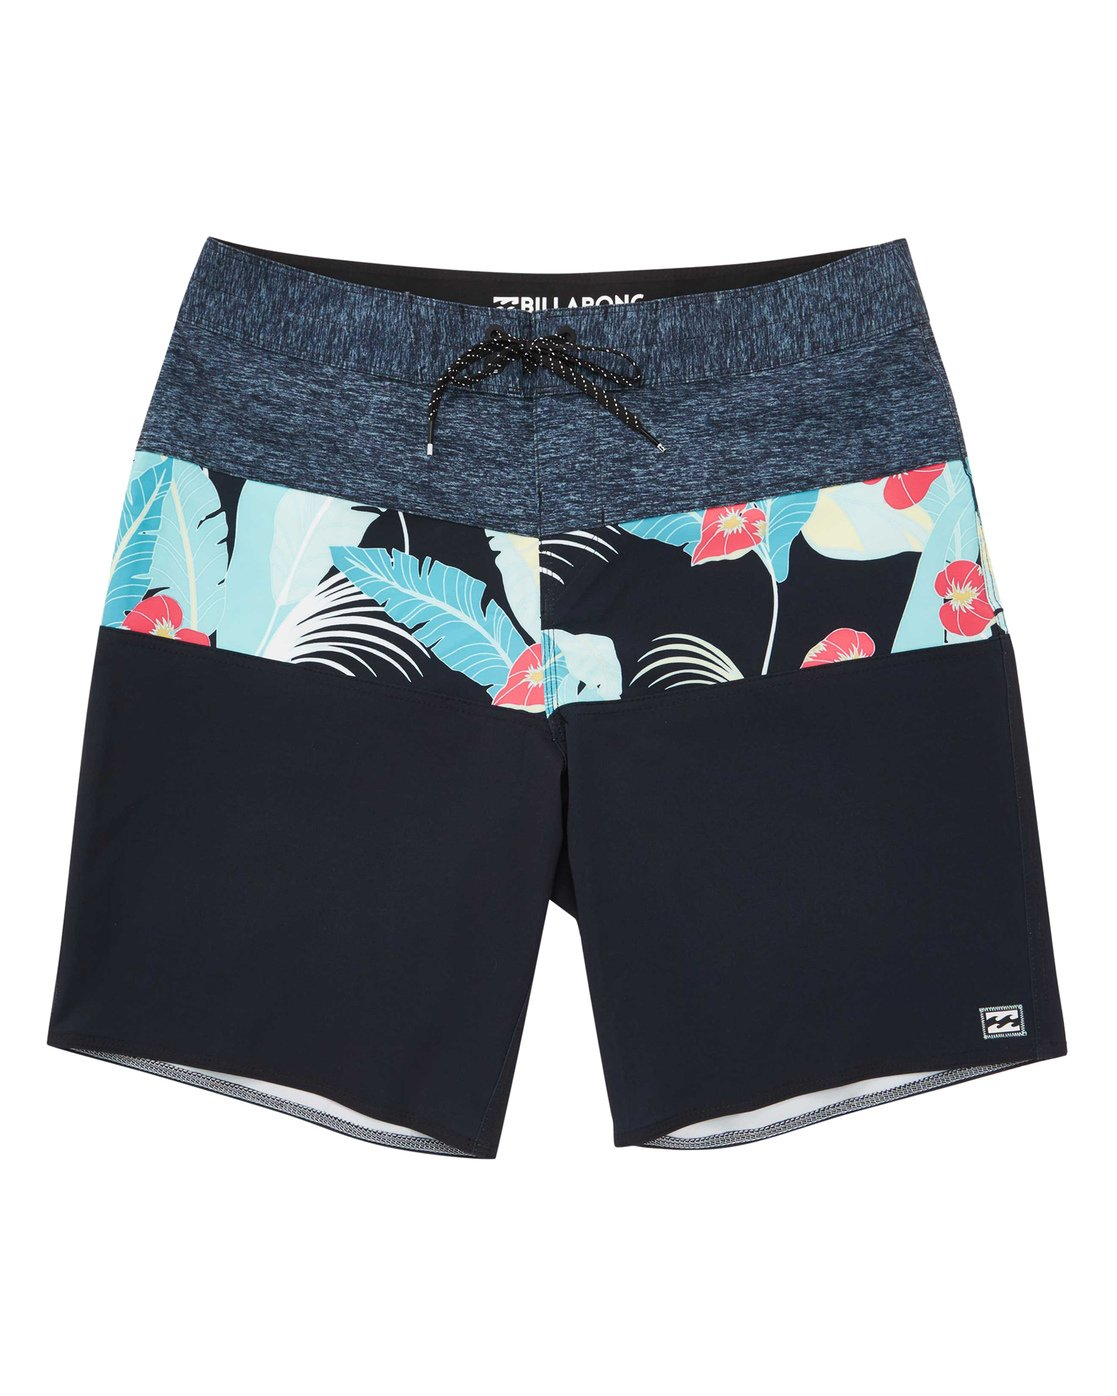 Billabong Boys Tribong Pro